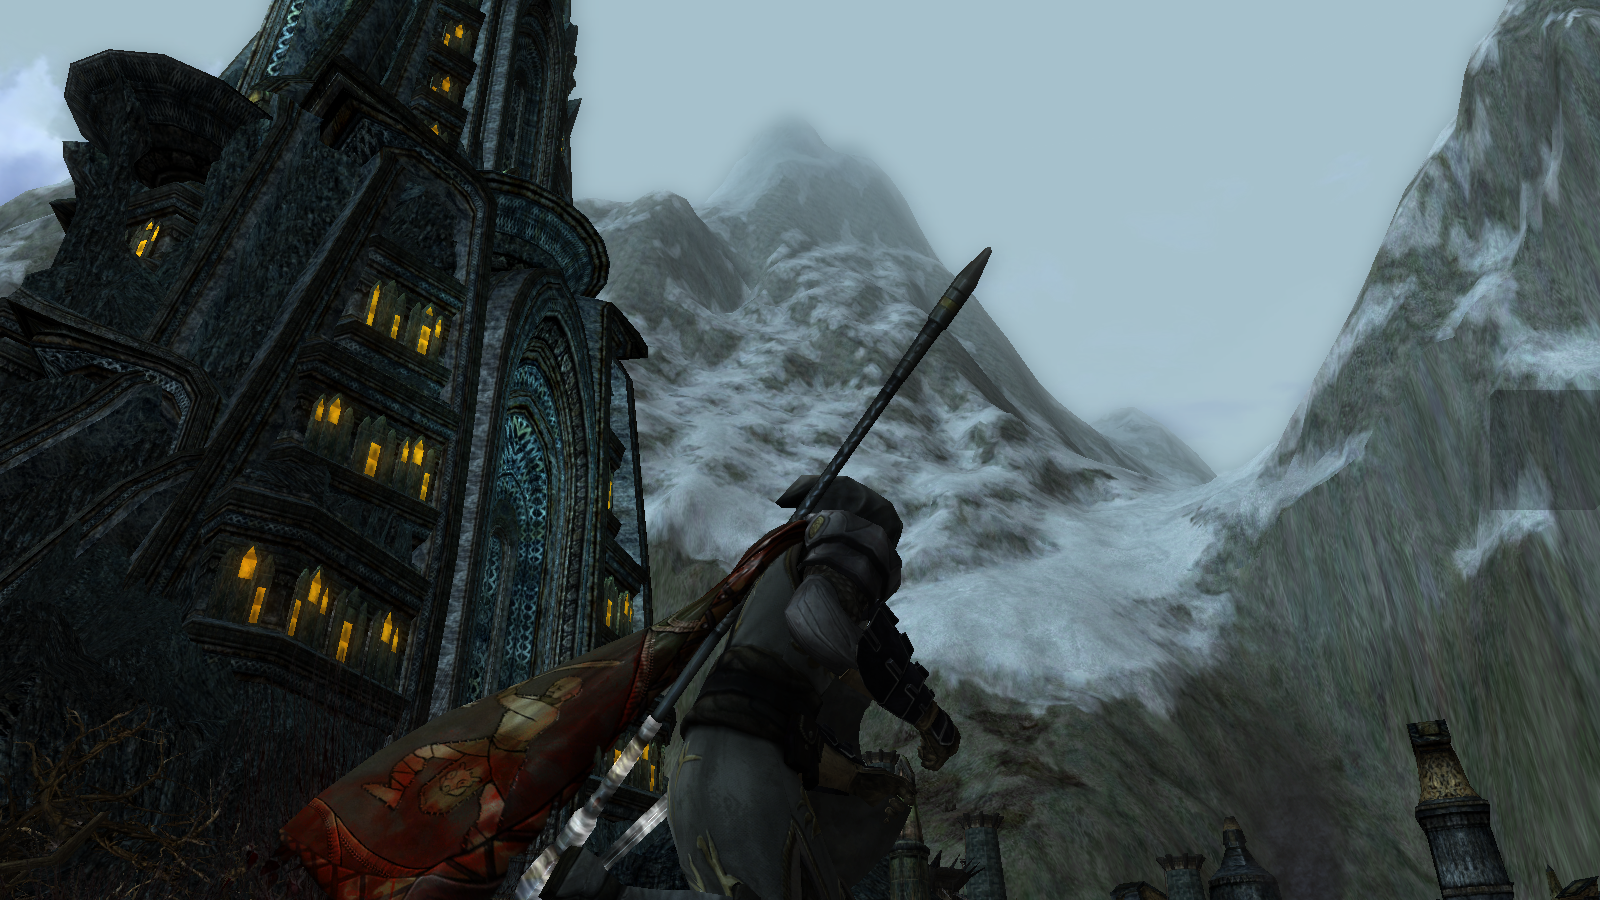 Lord of the Rings Online - Isengard